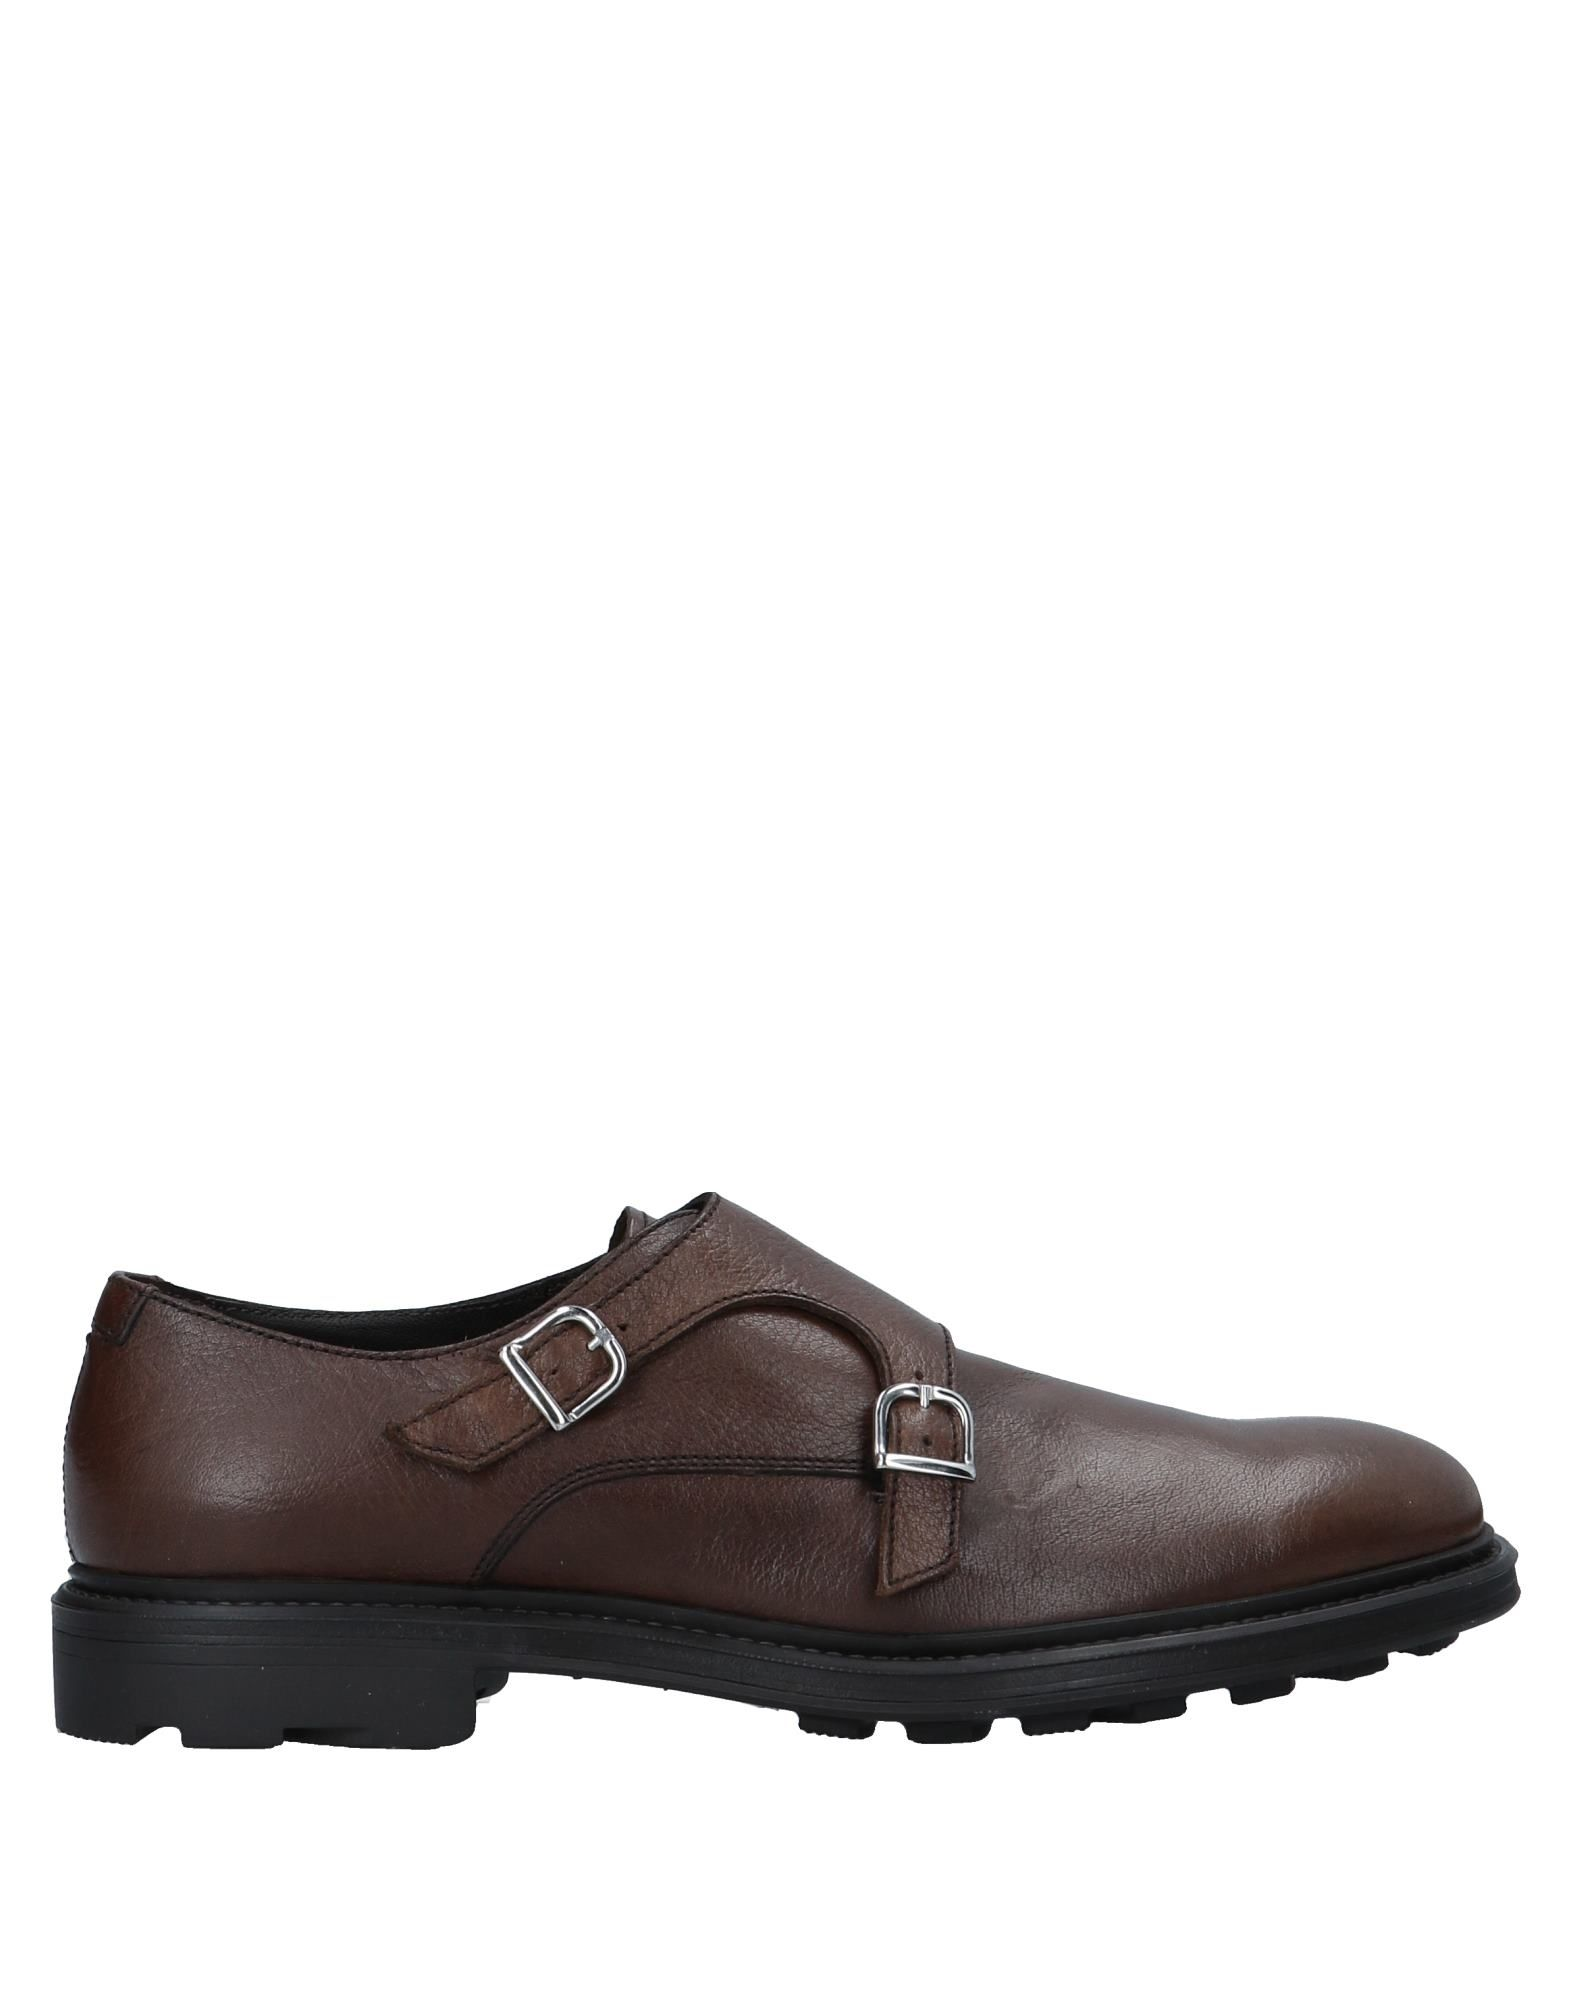 Doucal's Loafers - Men Doucal's Loafers online on 11544315HO  United Kingdom - 11544315HO on 0e4d29